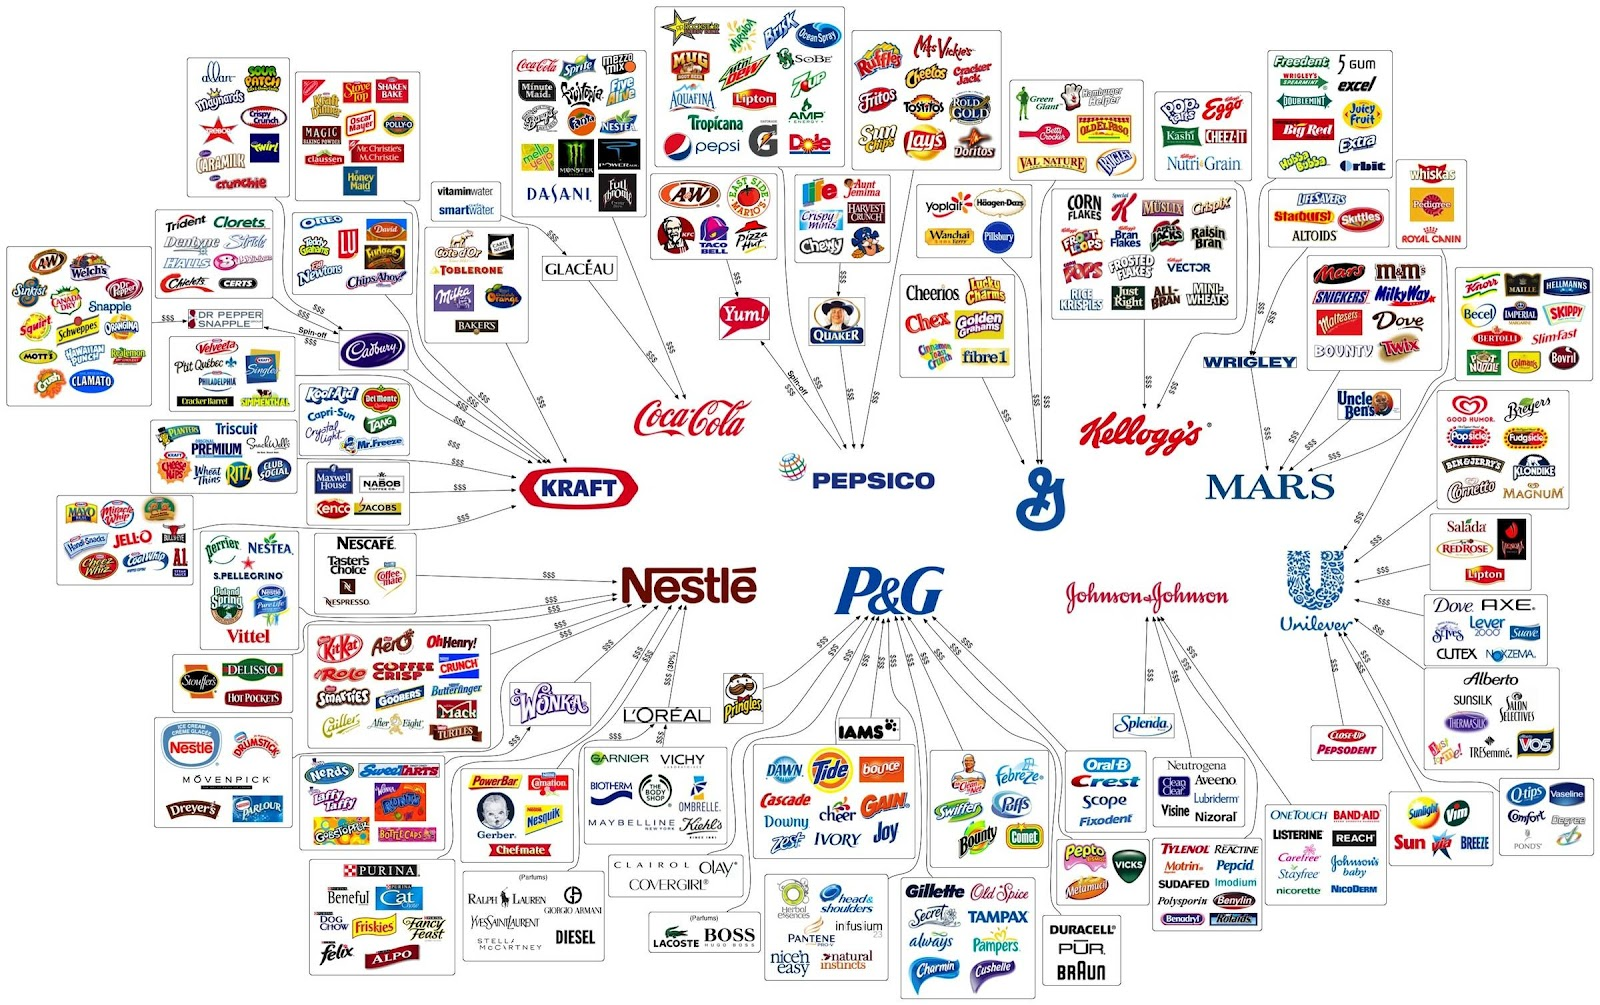 10 Companies That Own Everything